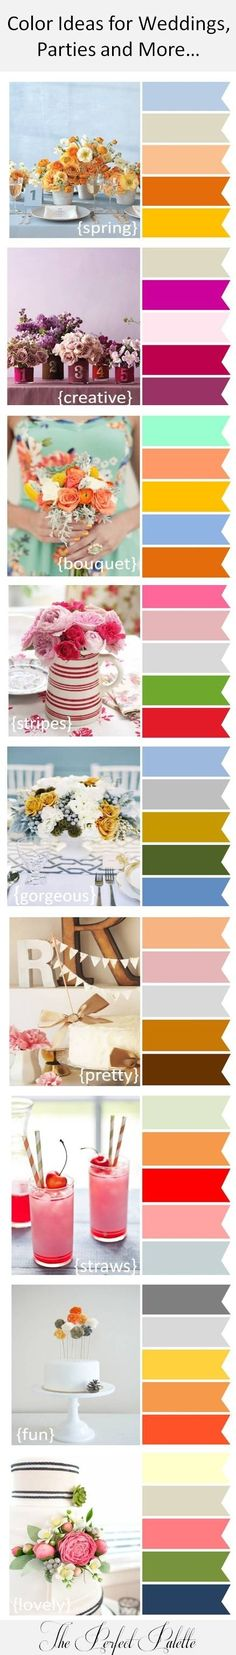 Color ideas to try in your home.  | Deloufleur Decor & Designs | (618) 985-3355 | www.deloufleur.com